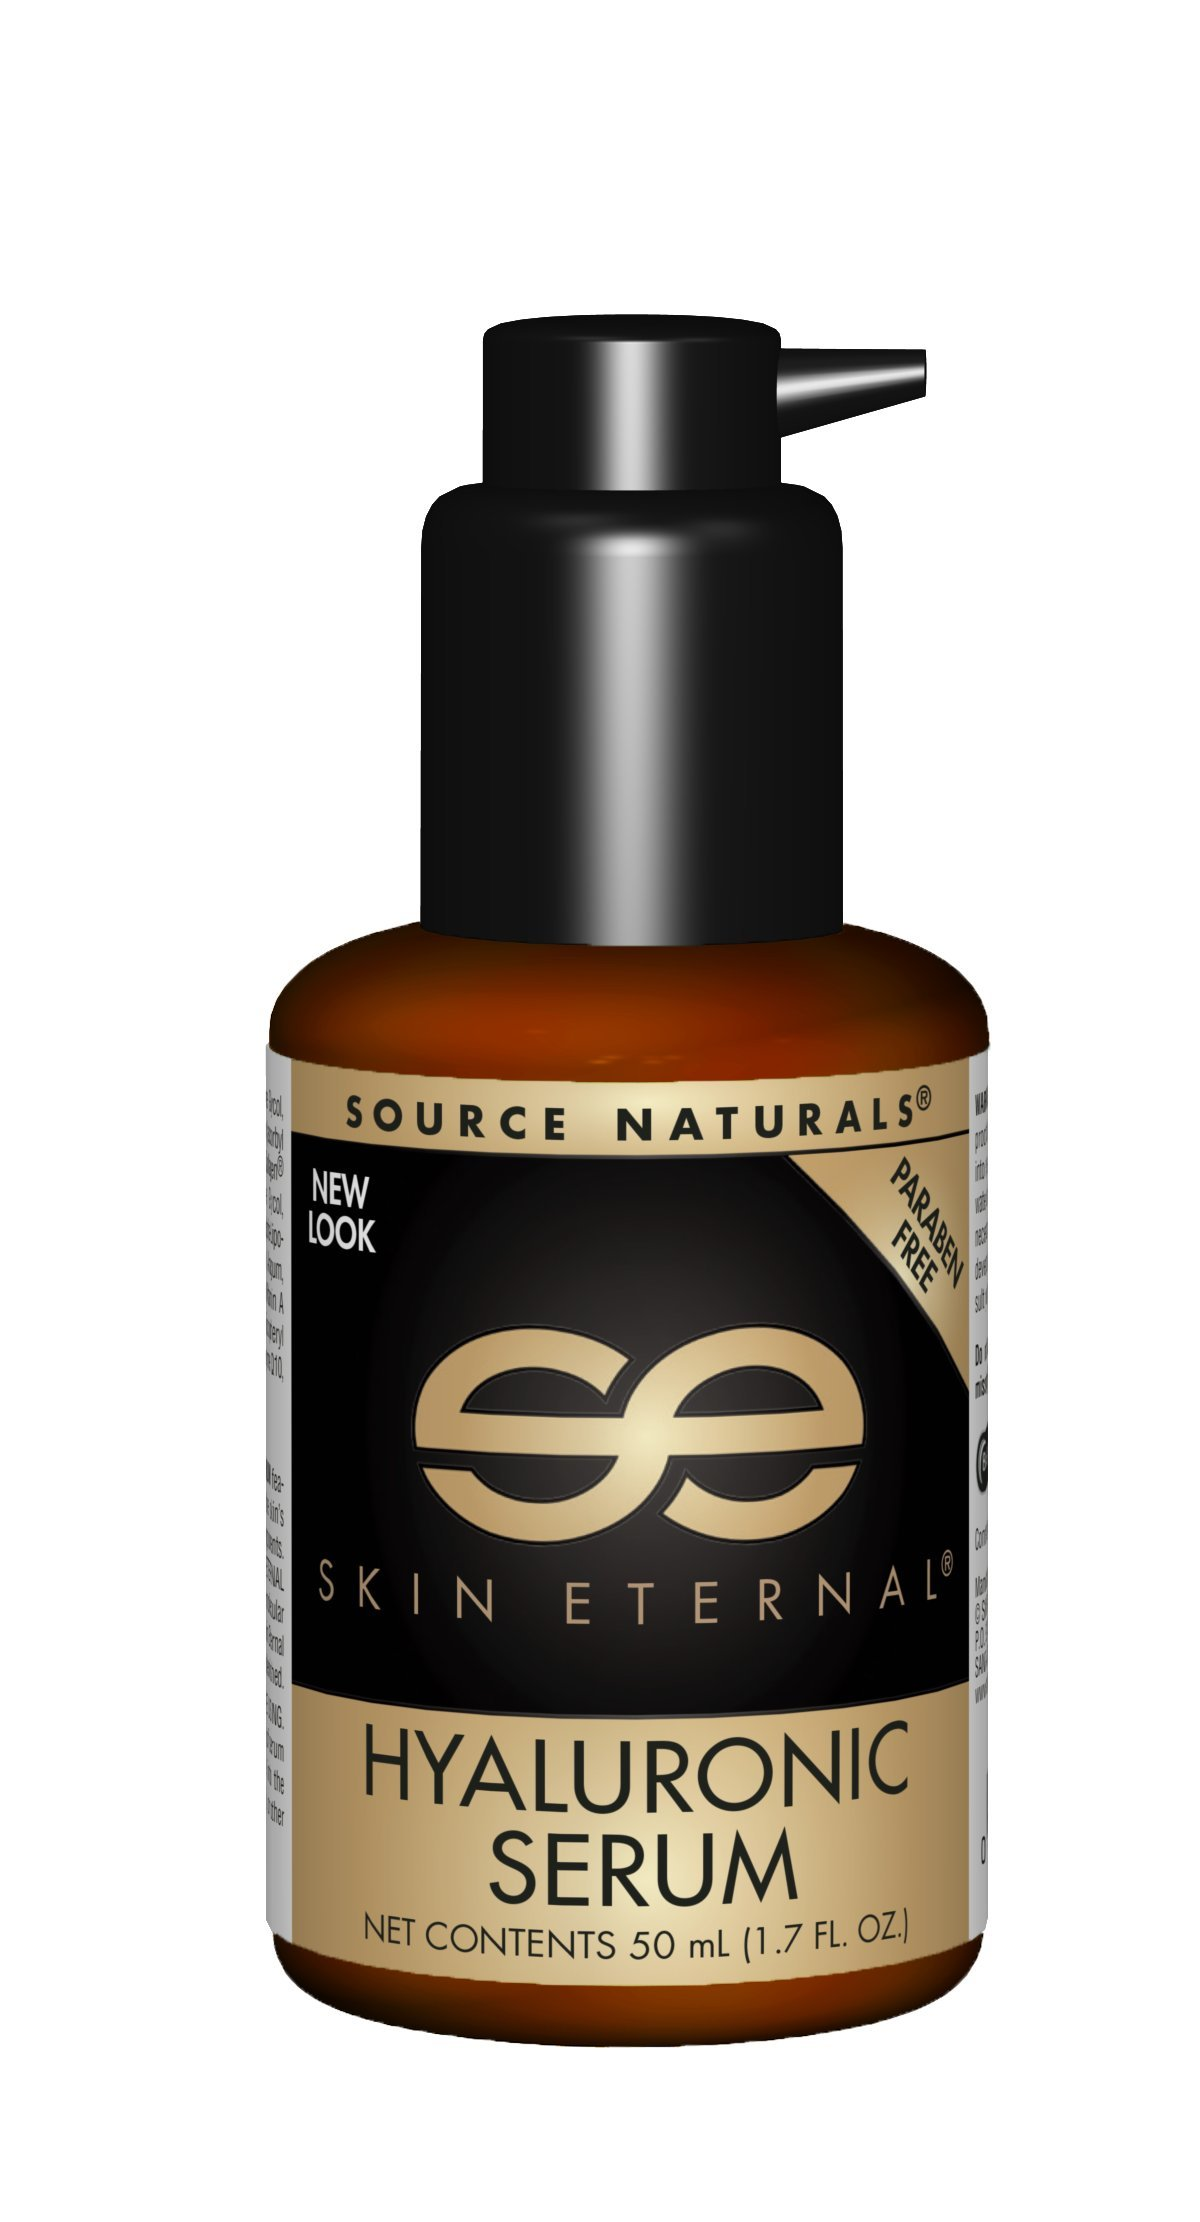 Source Naturals Skin Eternal Hyaluronic Serum, Will Leave Skin Feeling Soft and Replenished, 1.7 Ounce